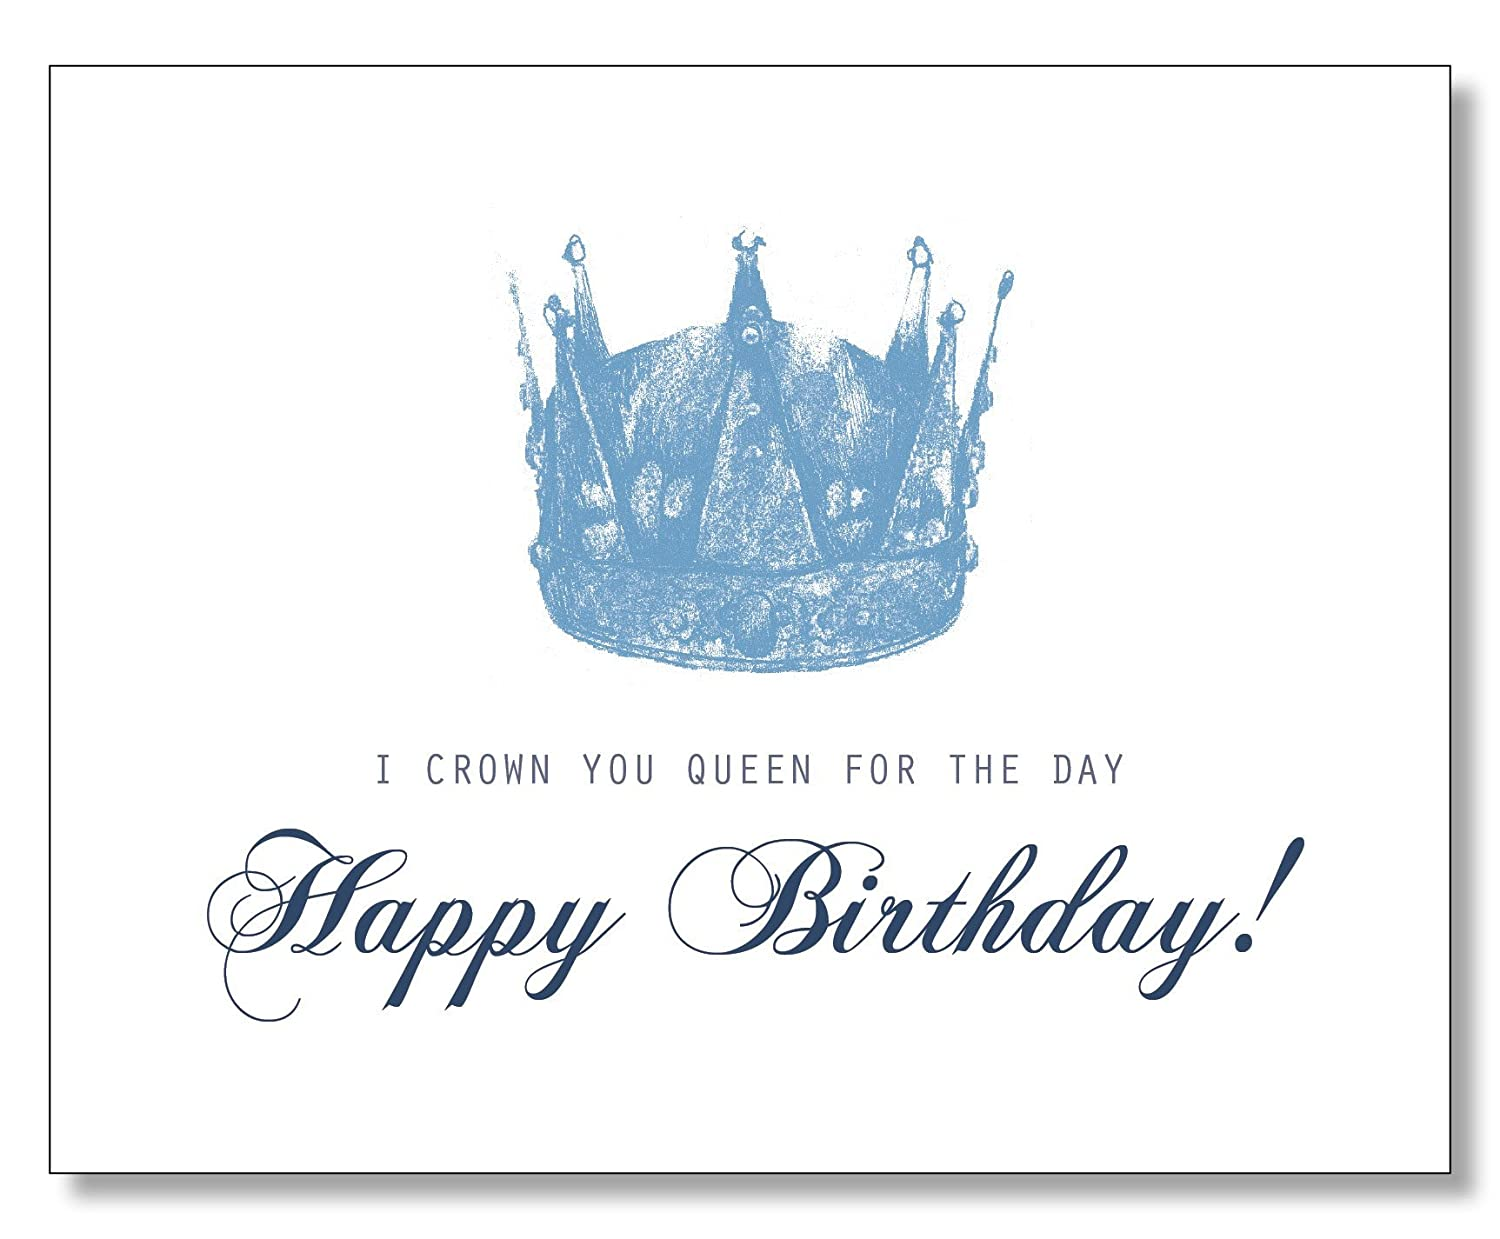 Amazon.com: QUEEN FOR THE DAY HAPPY BIRTHDAY CARD: Handmade